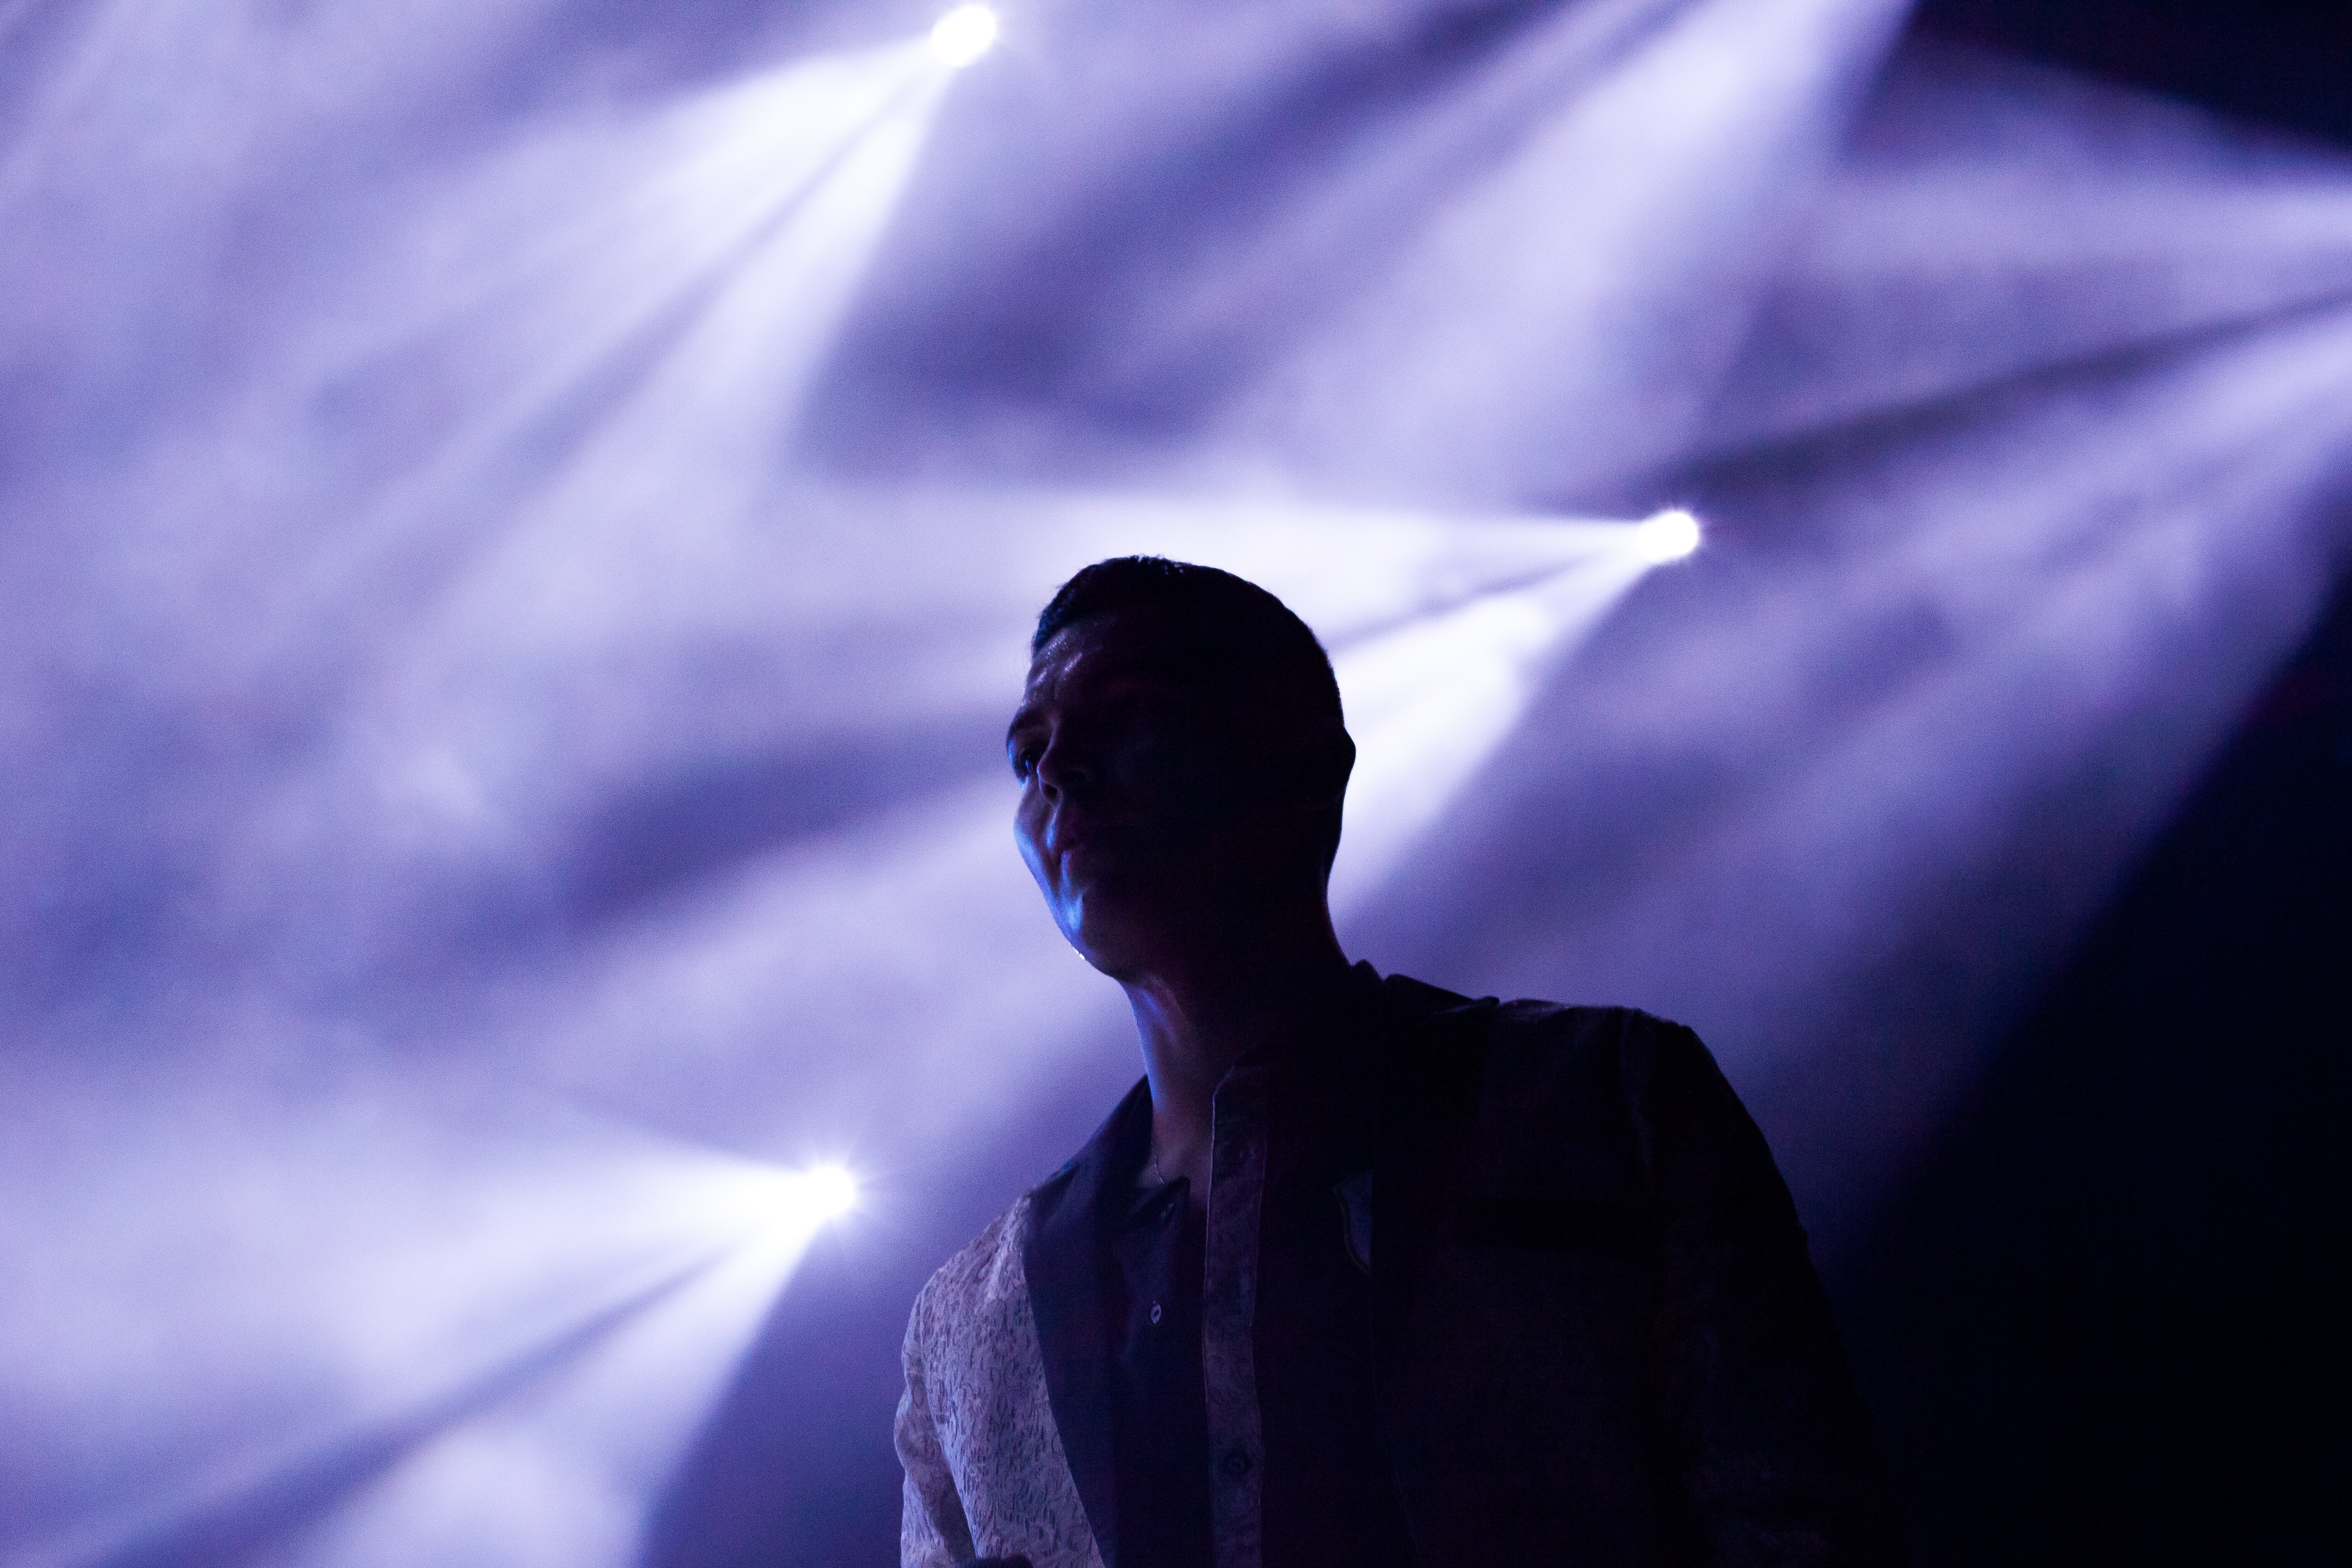 man's silhouette on stage reflected by stage lights